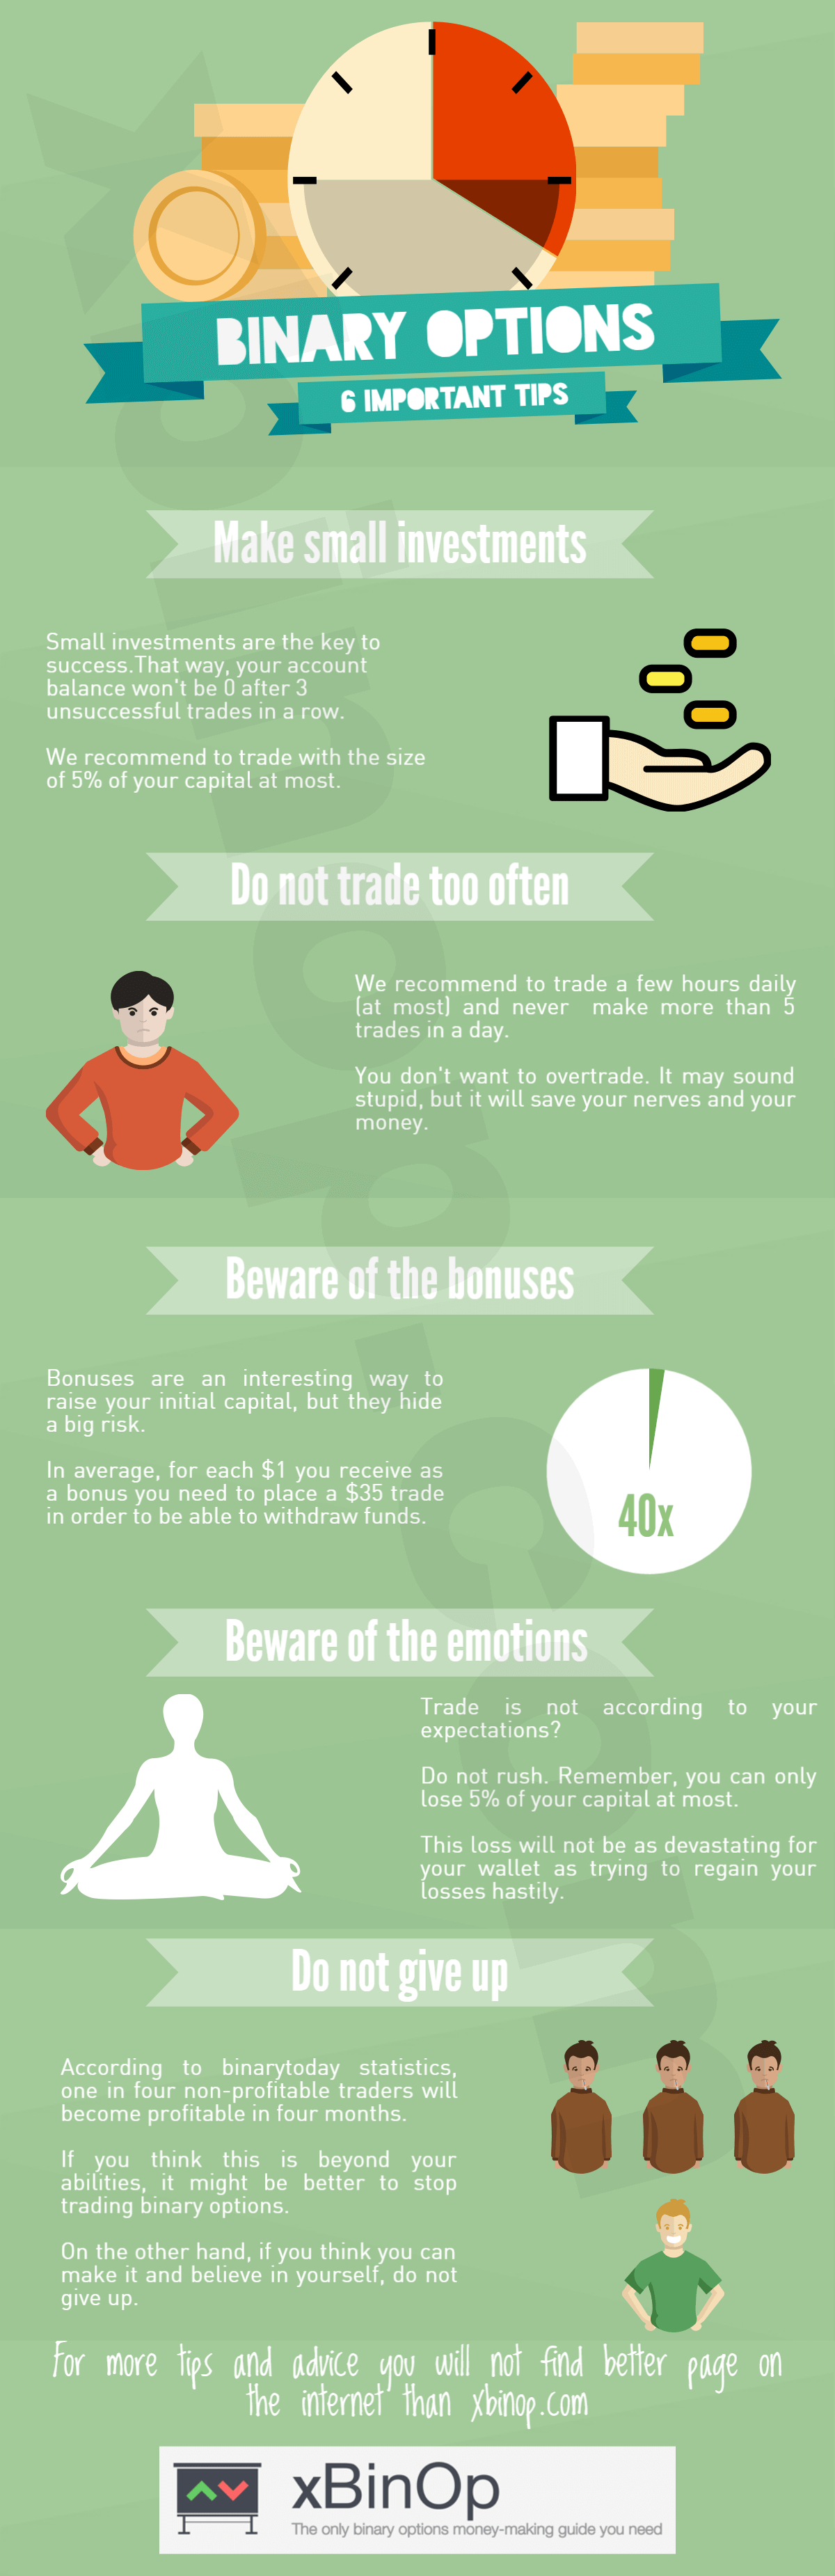 6 Important tips for trading